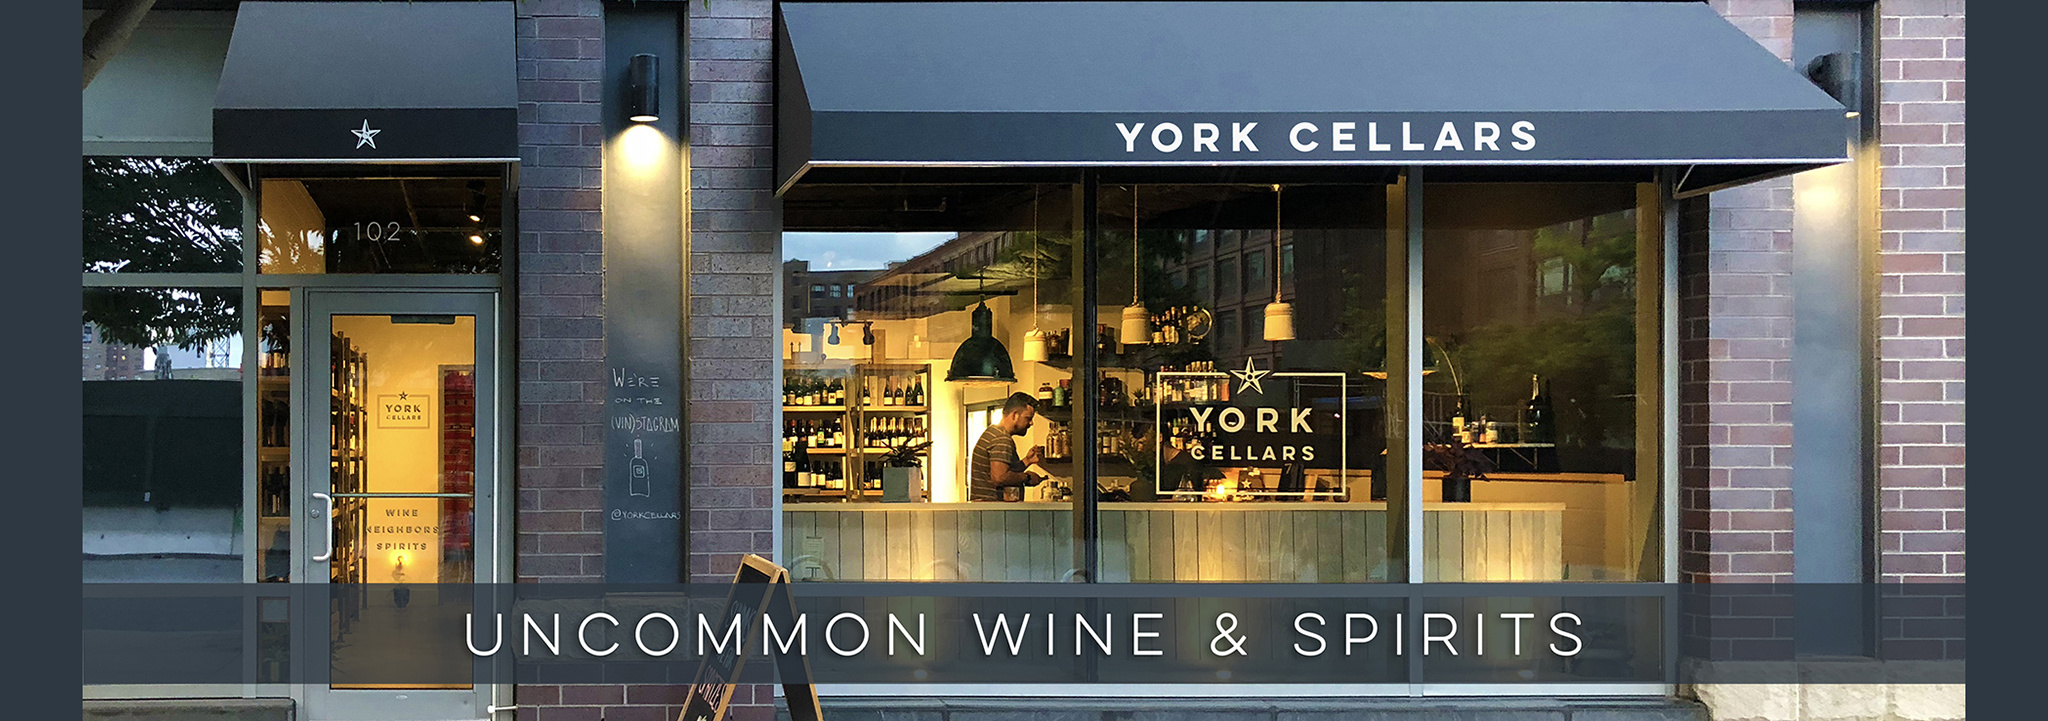 Uncommon Wine & Spirits